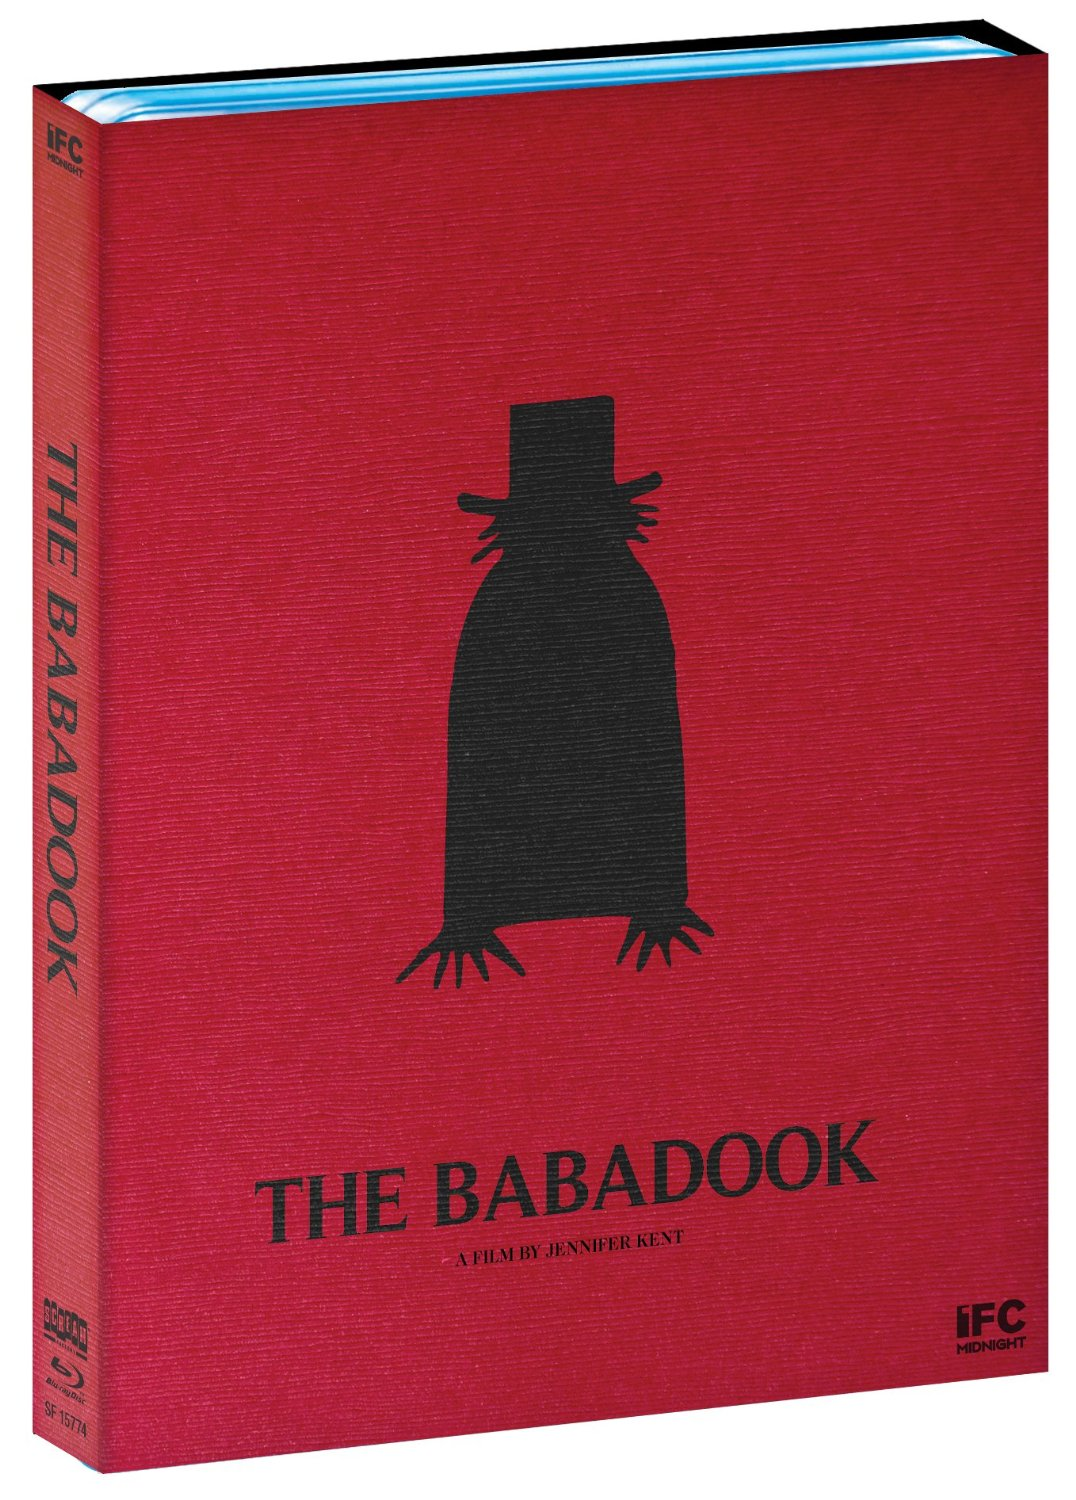 The Babadook IFC Midnight Deluxe Blu Ray